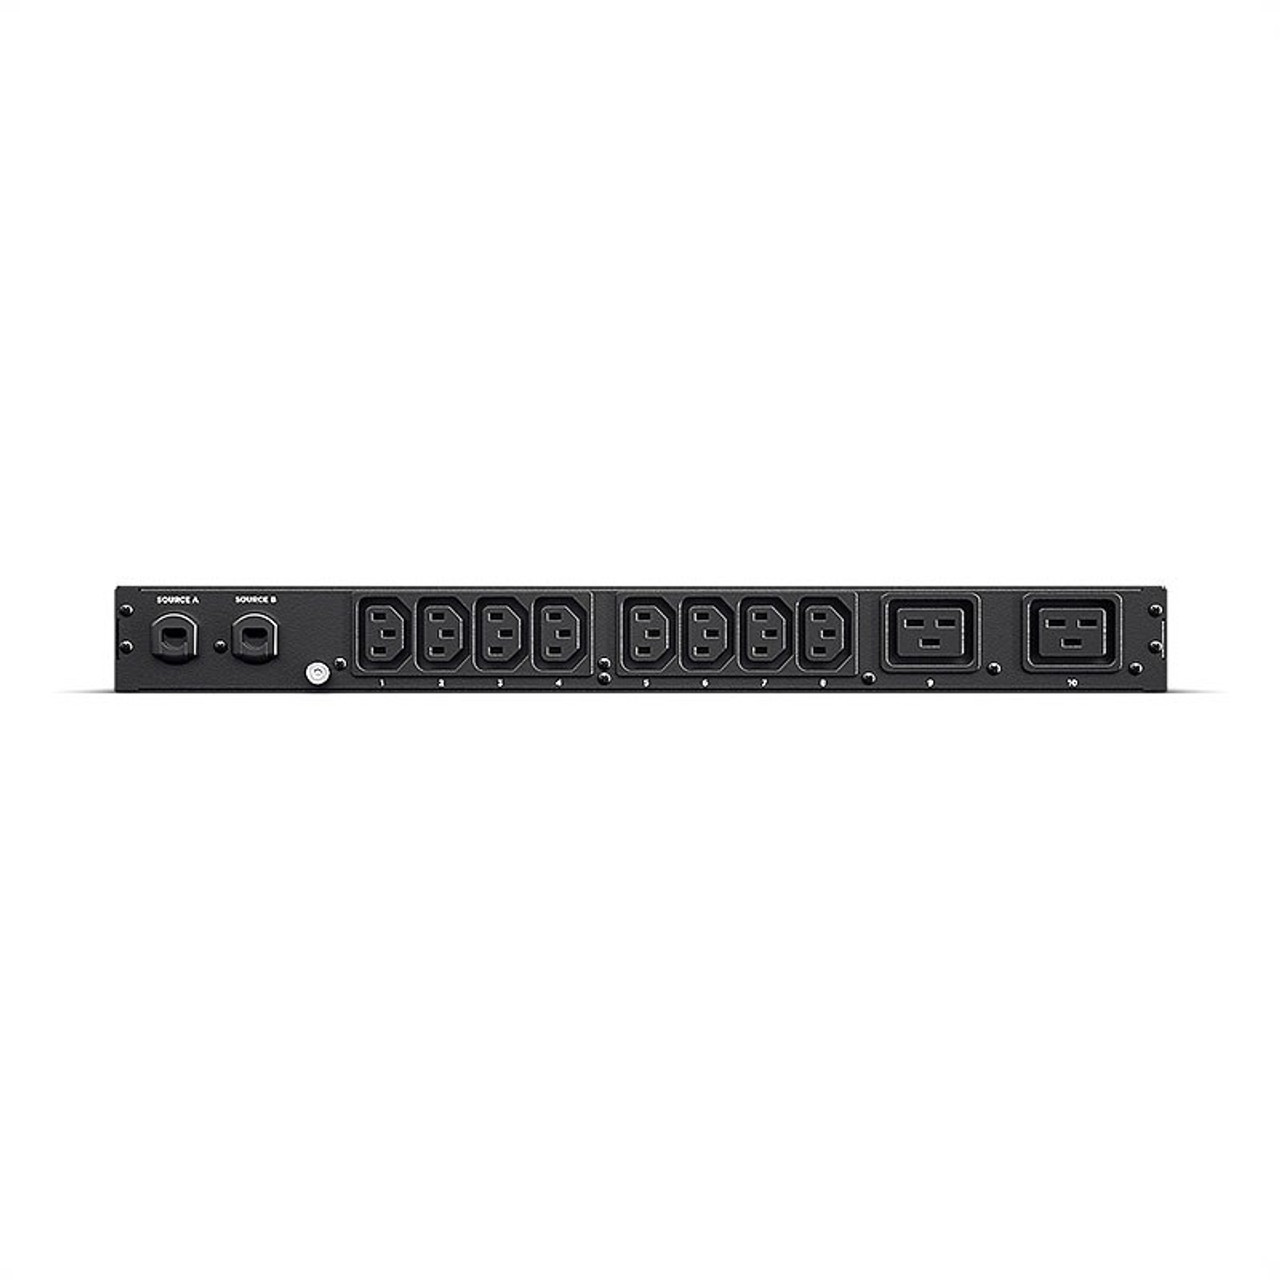 Image for CyberPower PDU20MHVCEE10AT 1U Horizontal 10-Outlet 16A Metered ATS PDU CX Computer Superstore